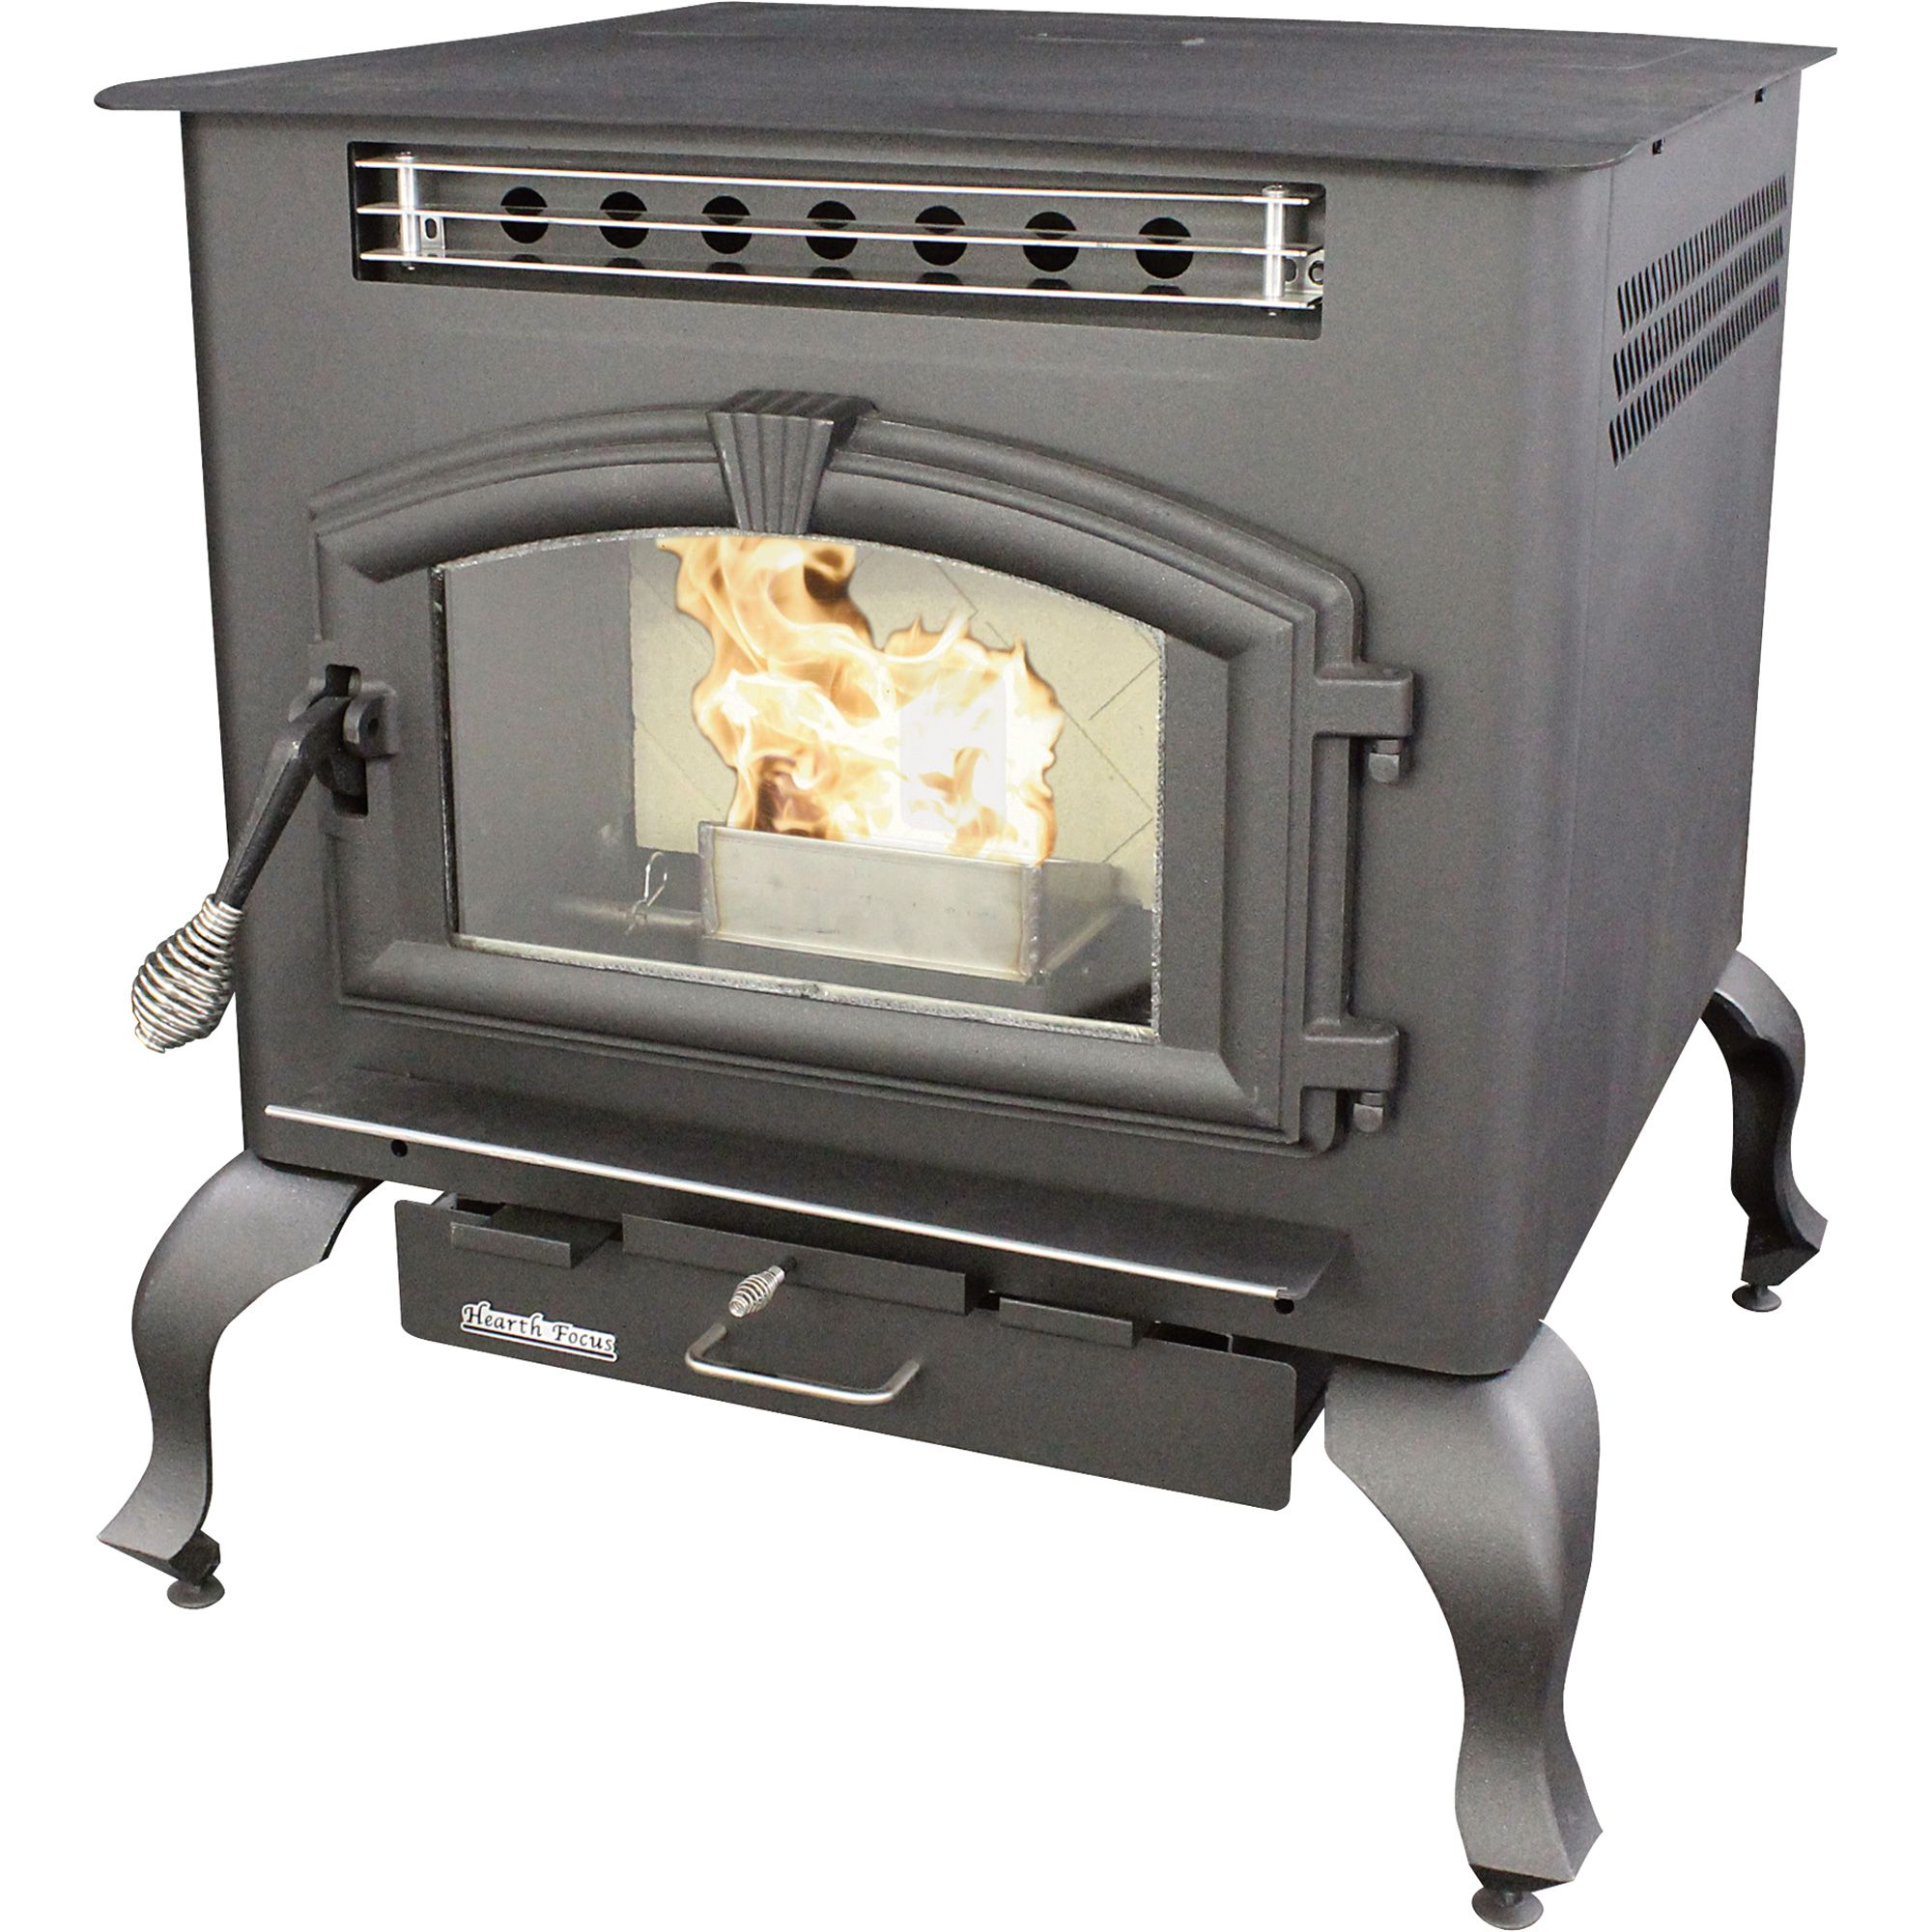 magnum baby countryside biomass corn wood pellet stove bc ac